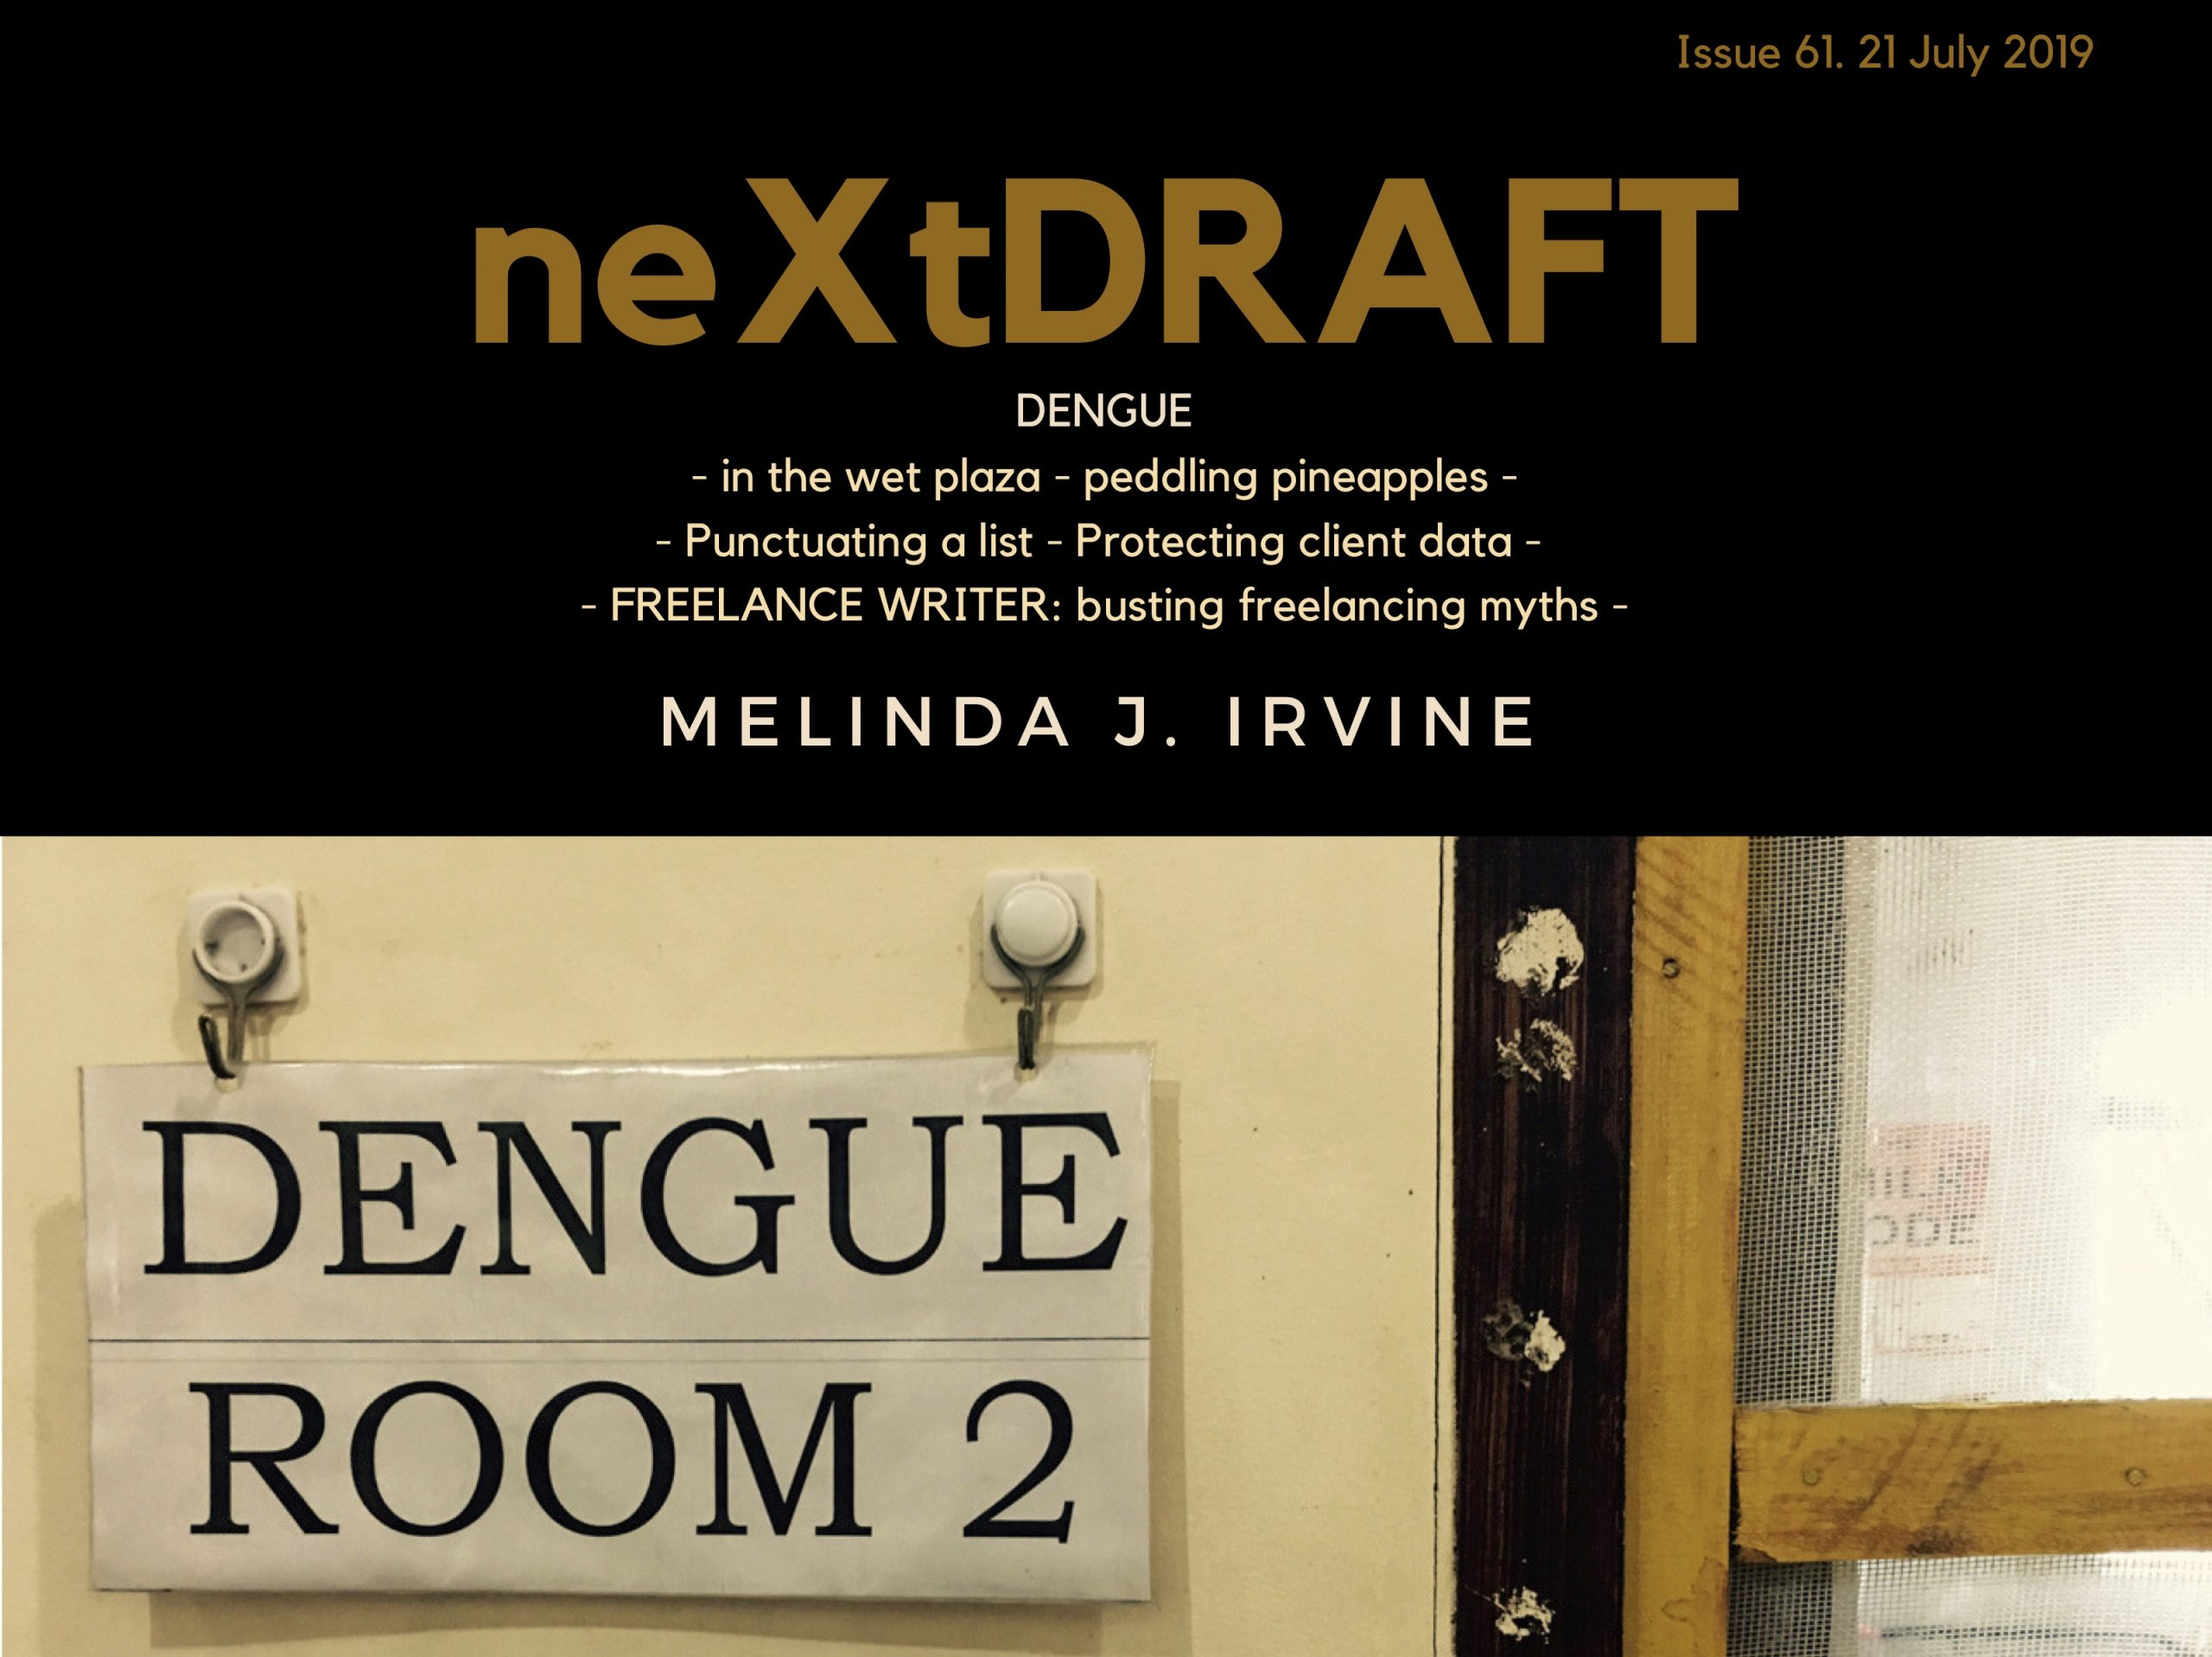 neXtDRAFT # 61.